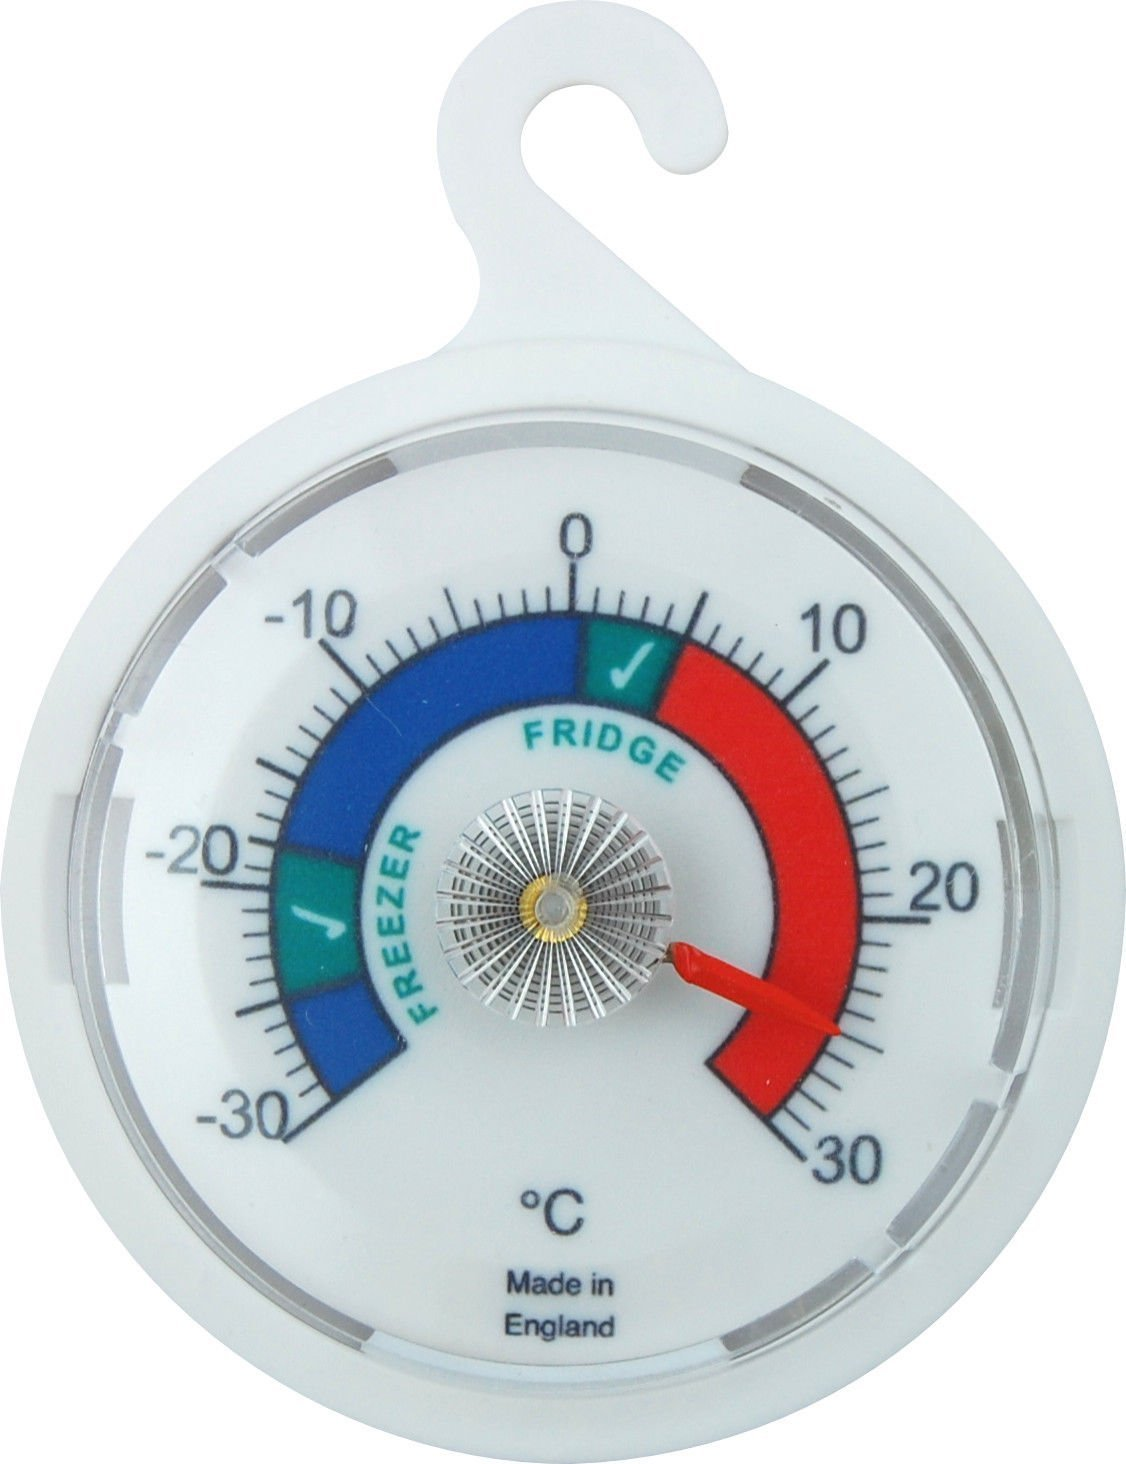 Freezer/Fridge Thermometer 65mm Dial, Colour Coded Zones. Great for Home, Coffee Shops, Restaurants, Bars, Cafes Brannan